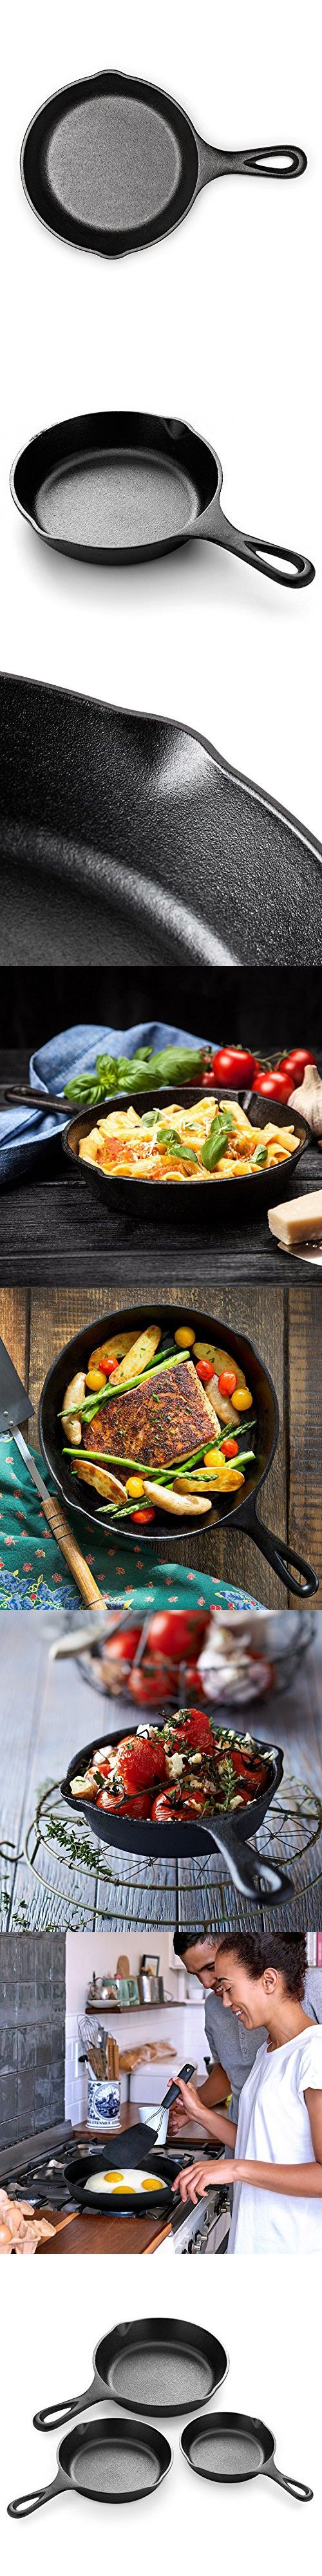 "Simple Chef Cast Iron Skillet 3-Piece Set - Best Heavy-Duty Professional Restaurant Chef Quality Pre-Seasoned Pan Cookware Set - 10"", 8"", 6"" Pans - Great For Frying, Saute, Cooking, Pizza & More"